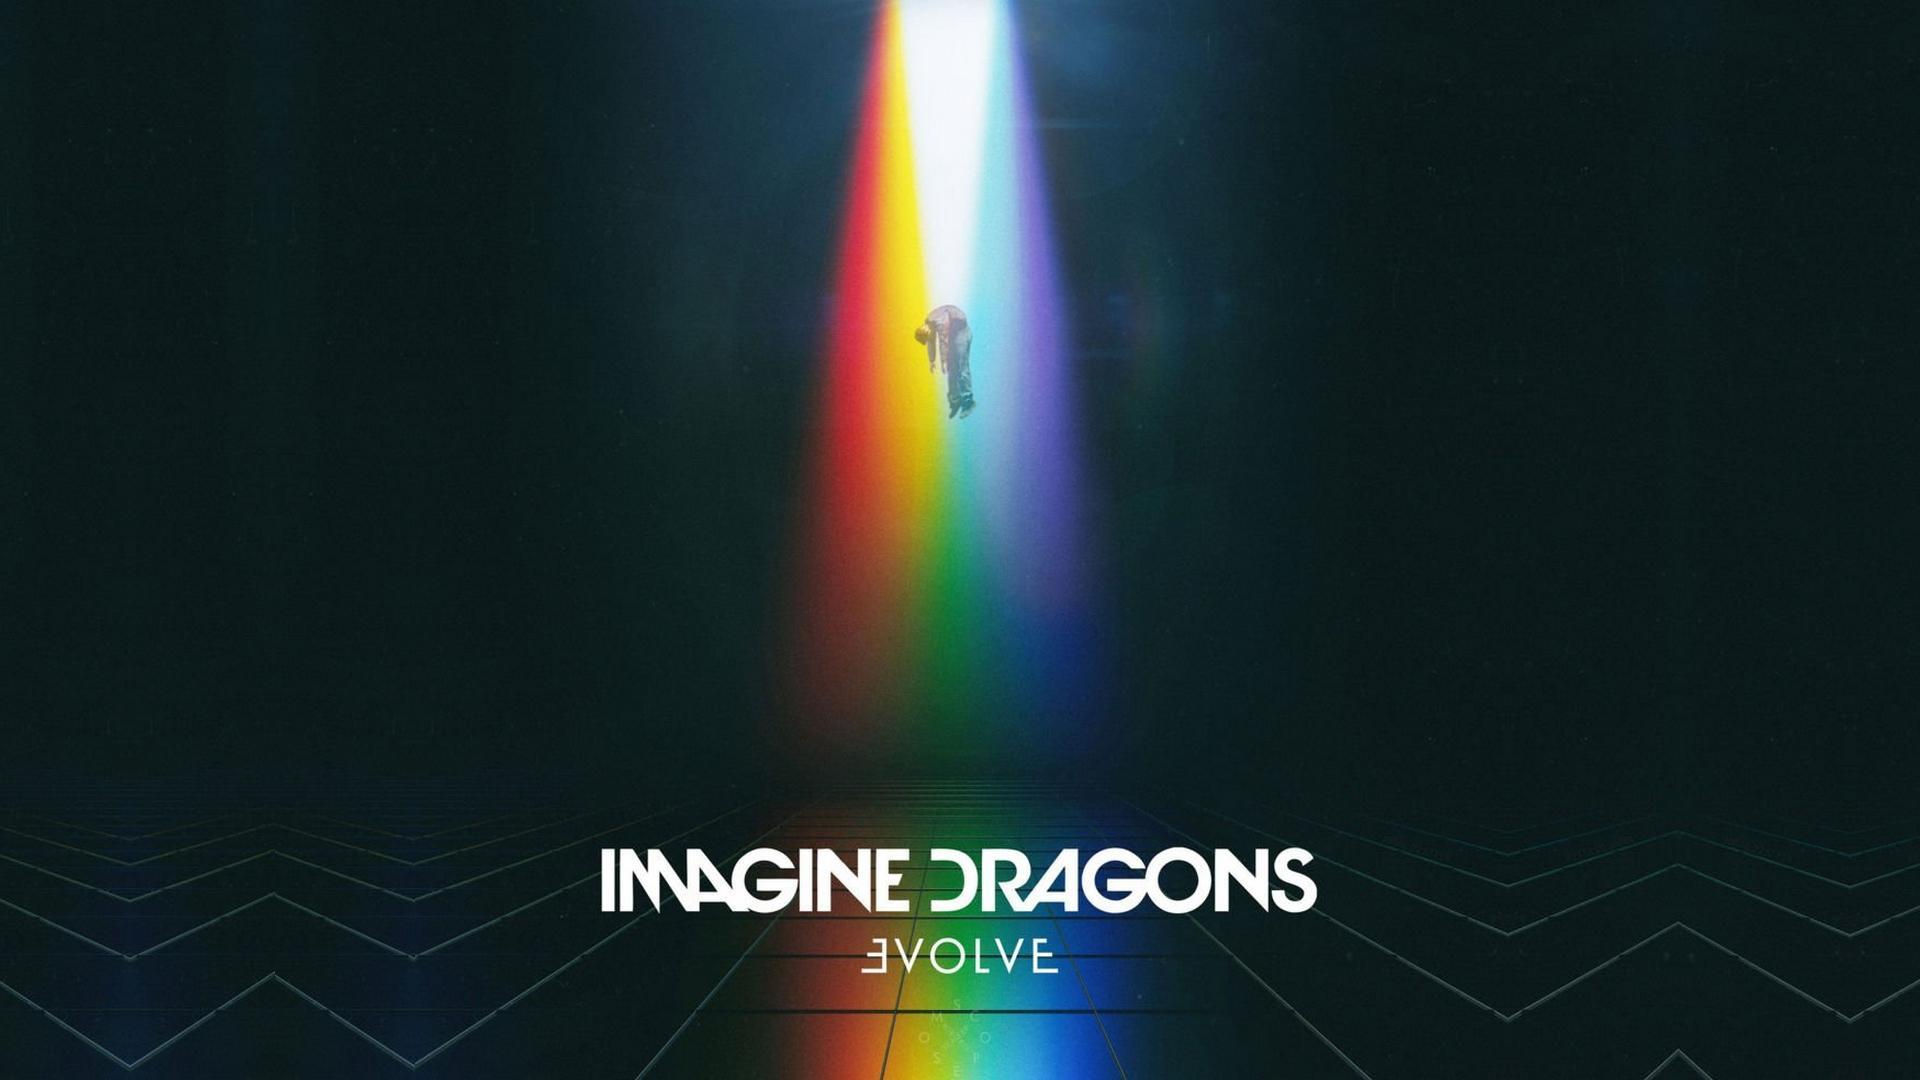 imagine dragons 2018 wallpapers wallpaper cave